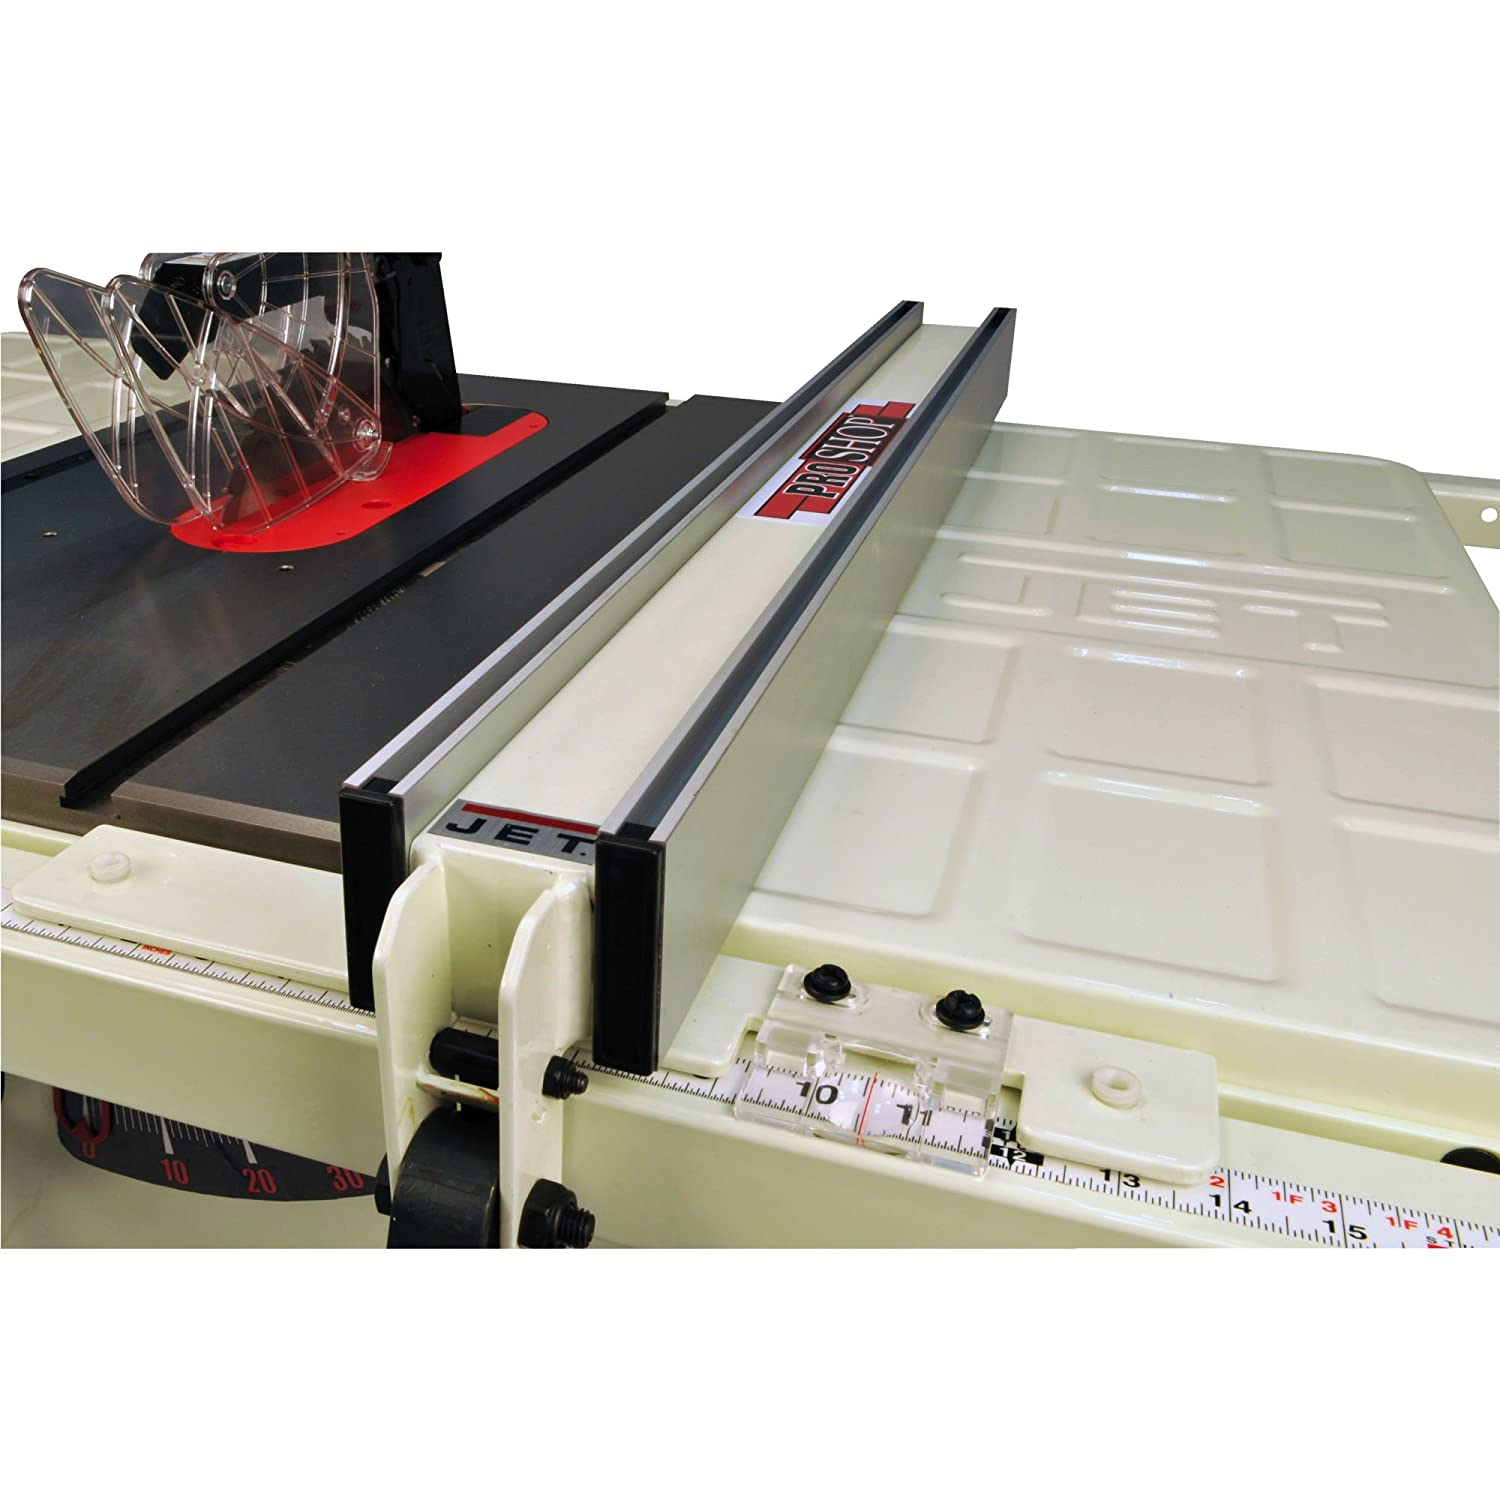 Jet 708493k jps 10ts 10 inch proshop tablesaw with 52 inch fence jet 708493k jps 10ts 10 inch proshop tablesaw with 52 inch fence steel wings and with riving knife power table saws amazon keyboard keysfo Choice Image